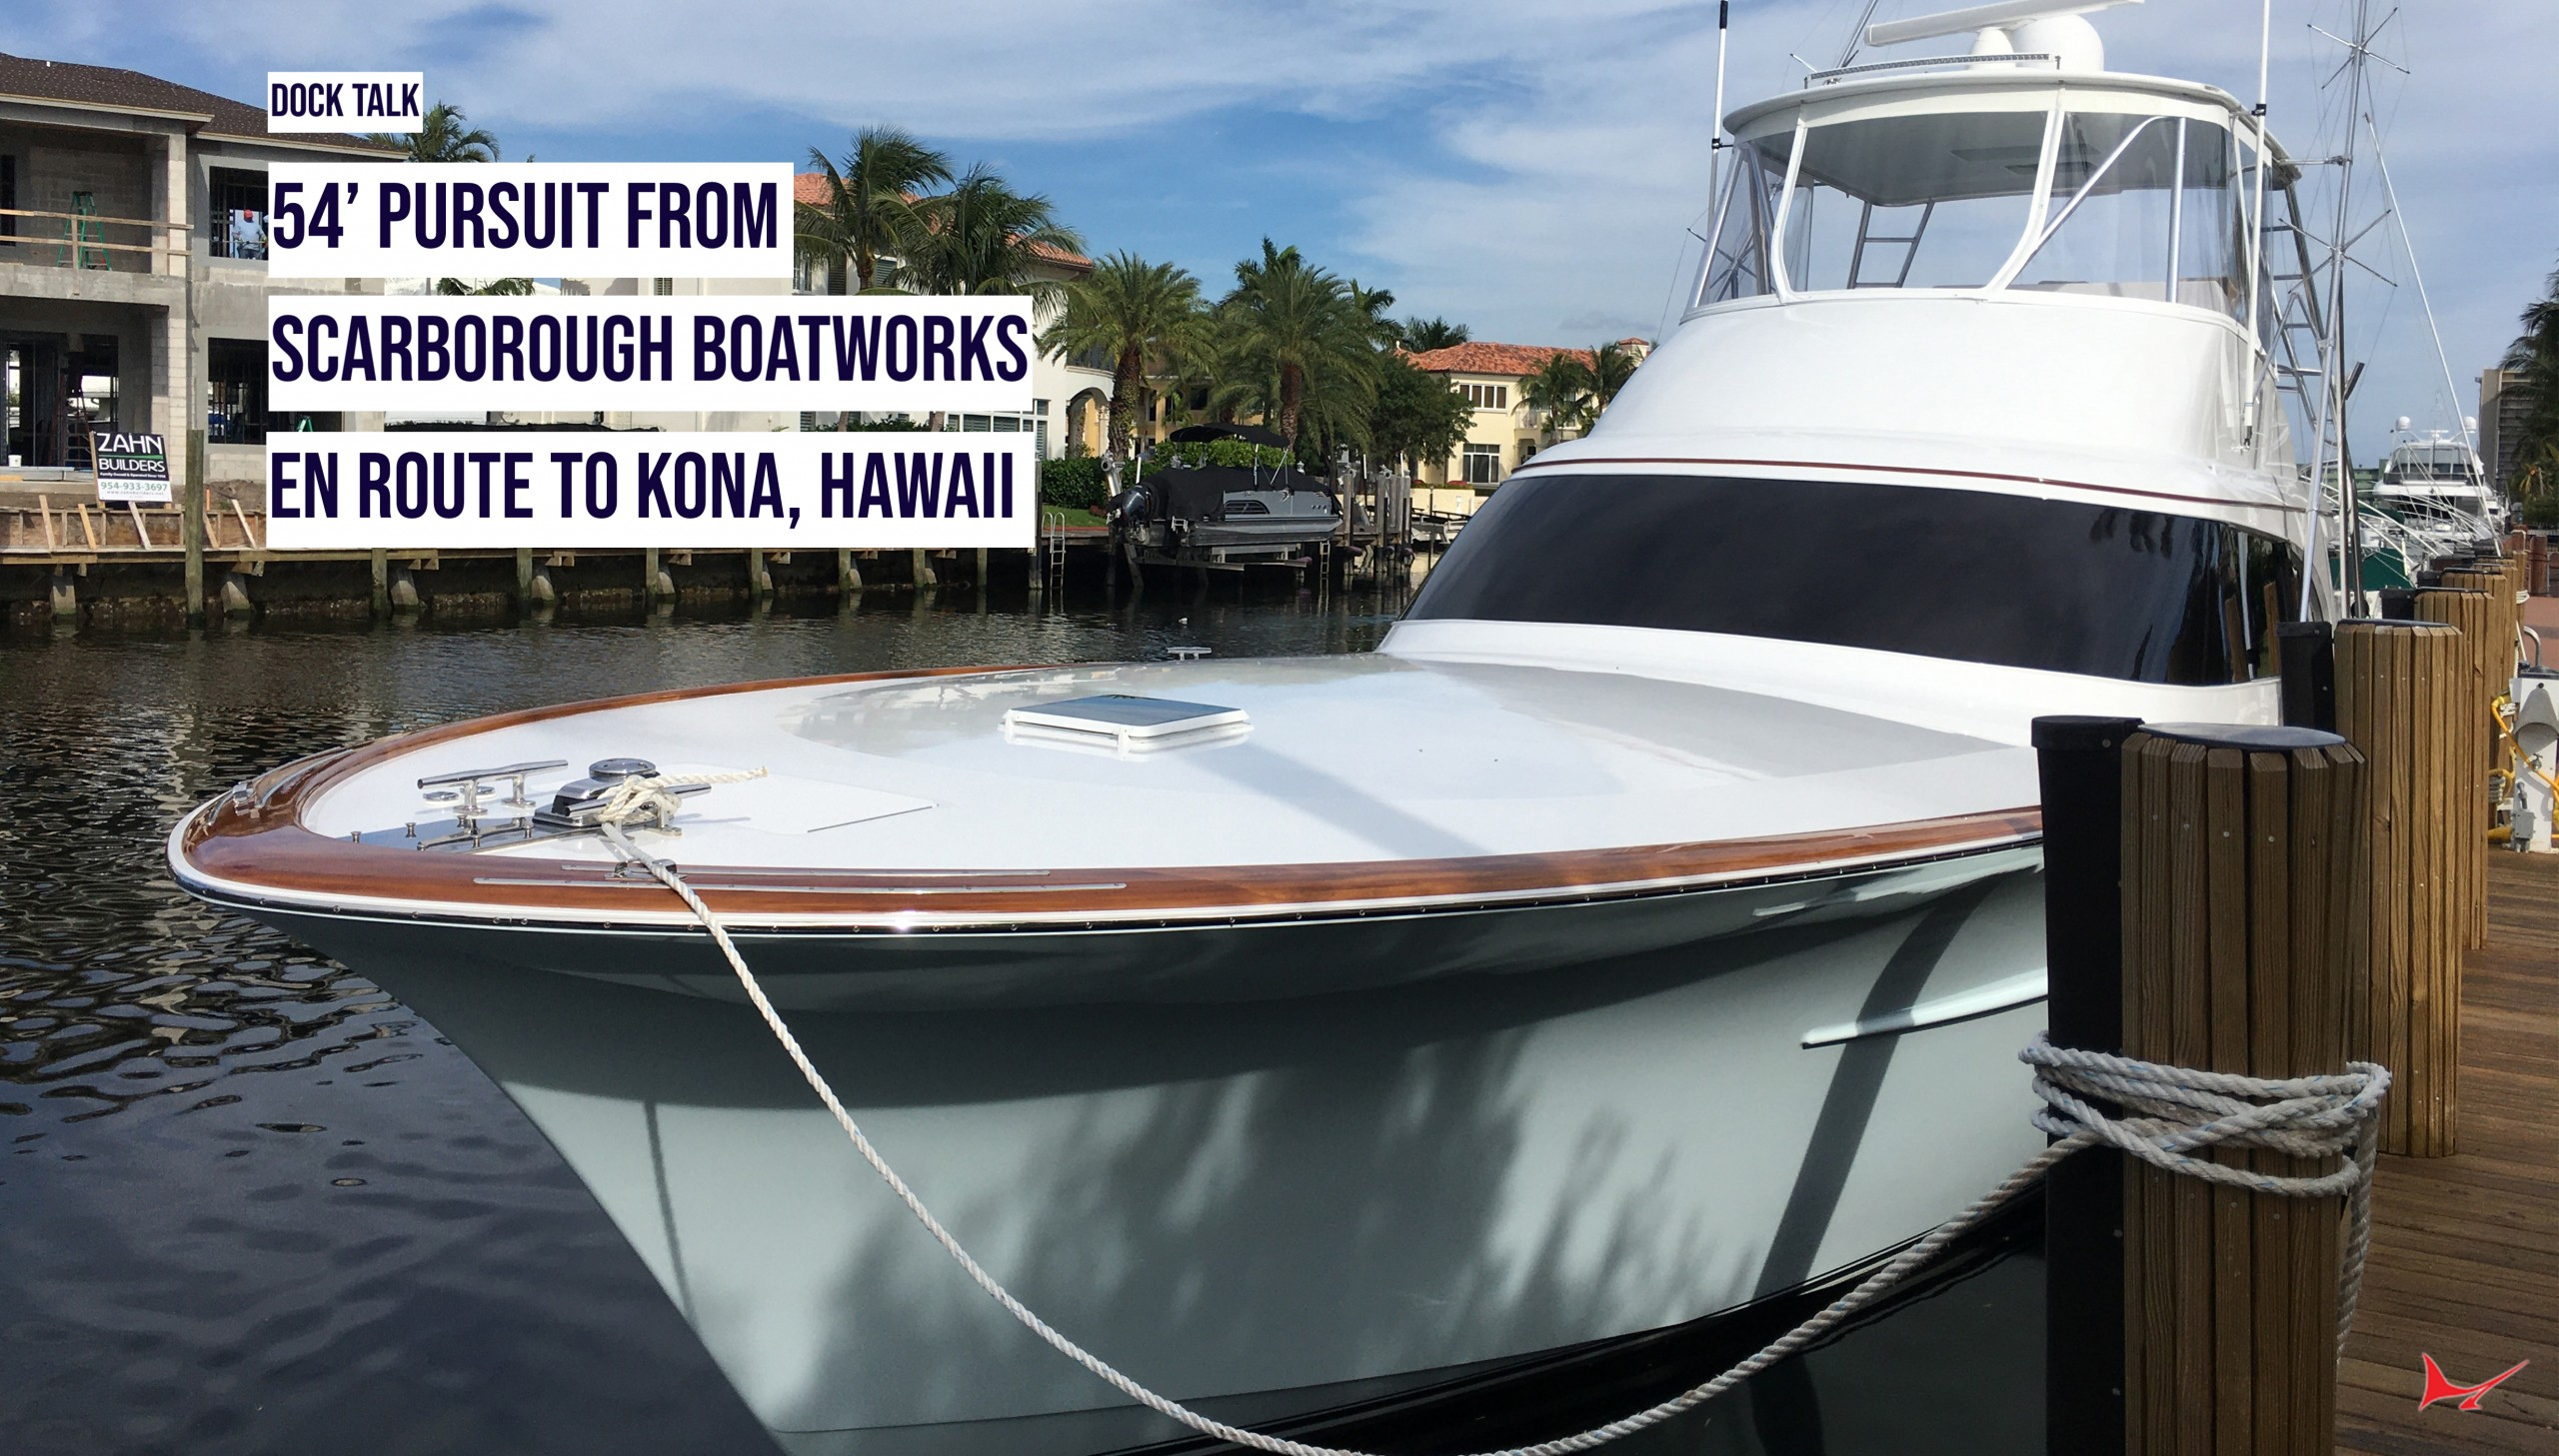 Dock Talk: Aboard the 54' Pursuit from Scarborough Boatworks